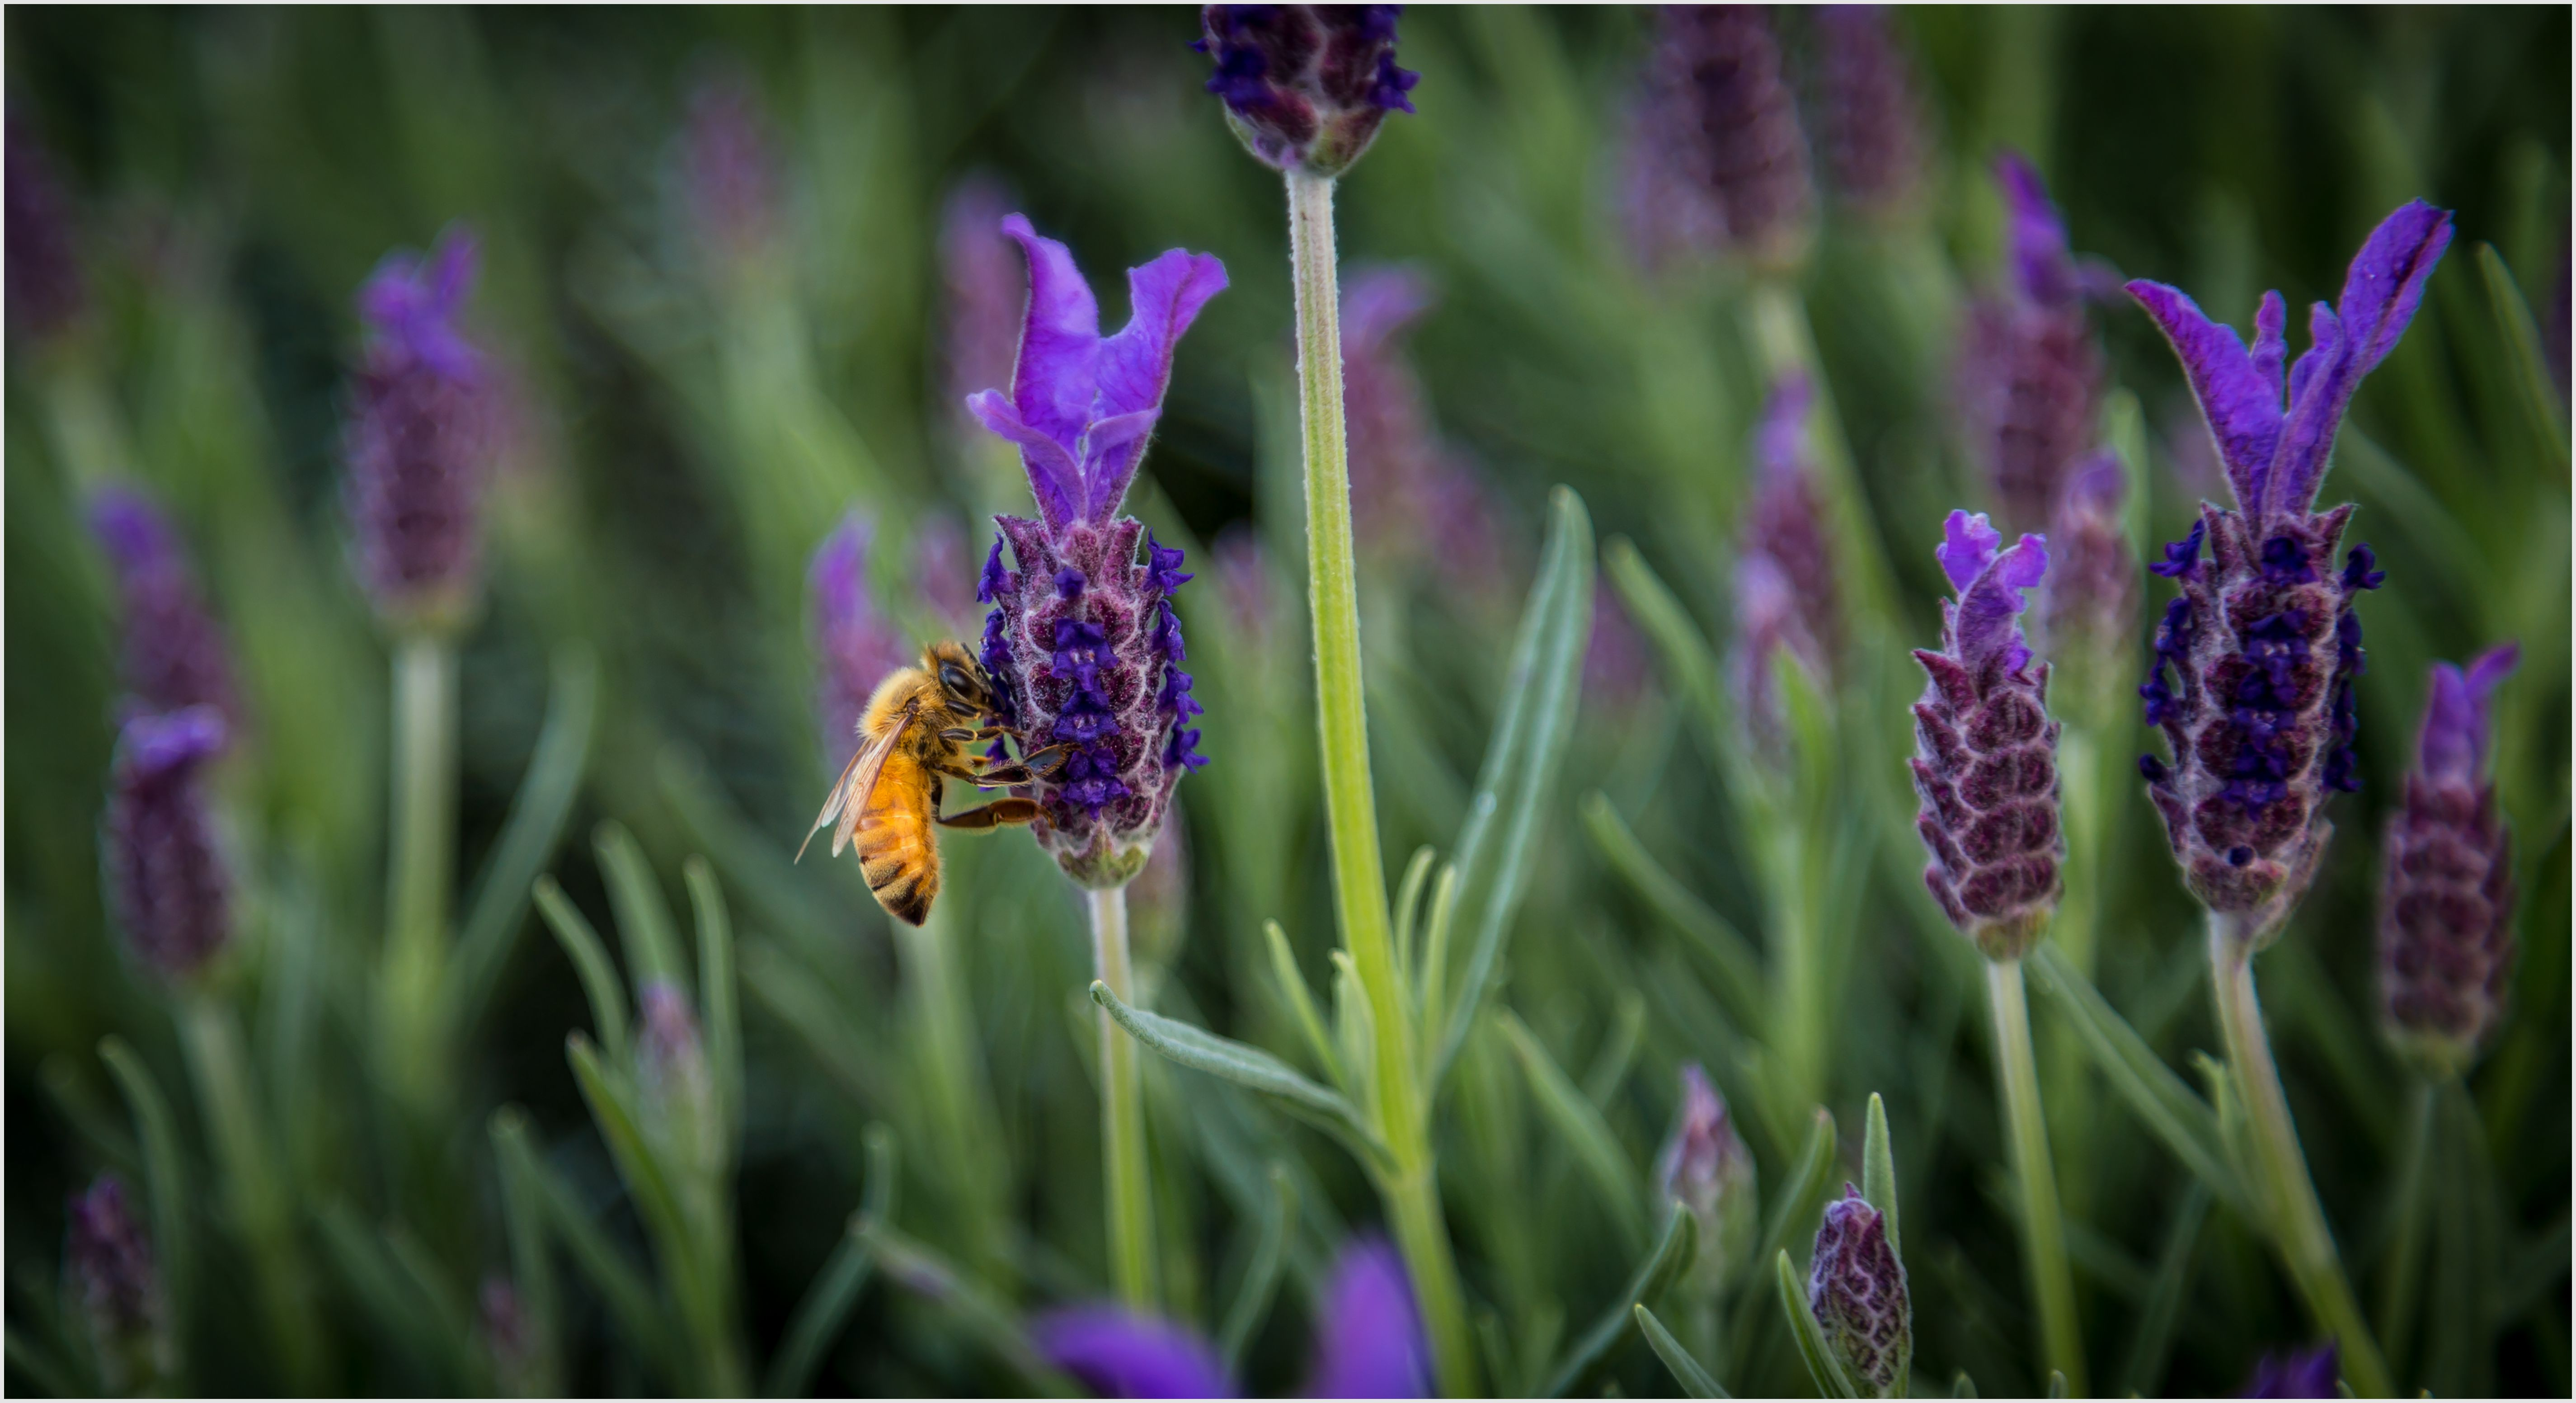 A single bee getting busy with some lavender. Purchase a print, cards, or a full size digital file of this image at www.kirkvogel.com